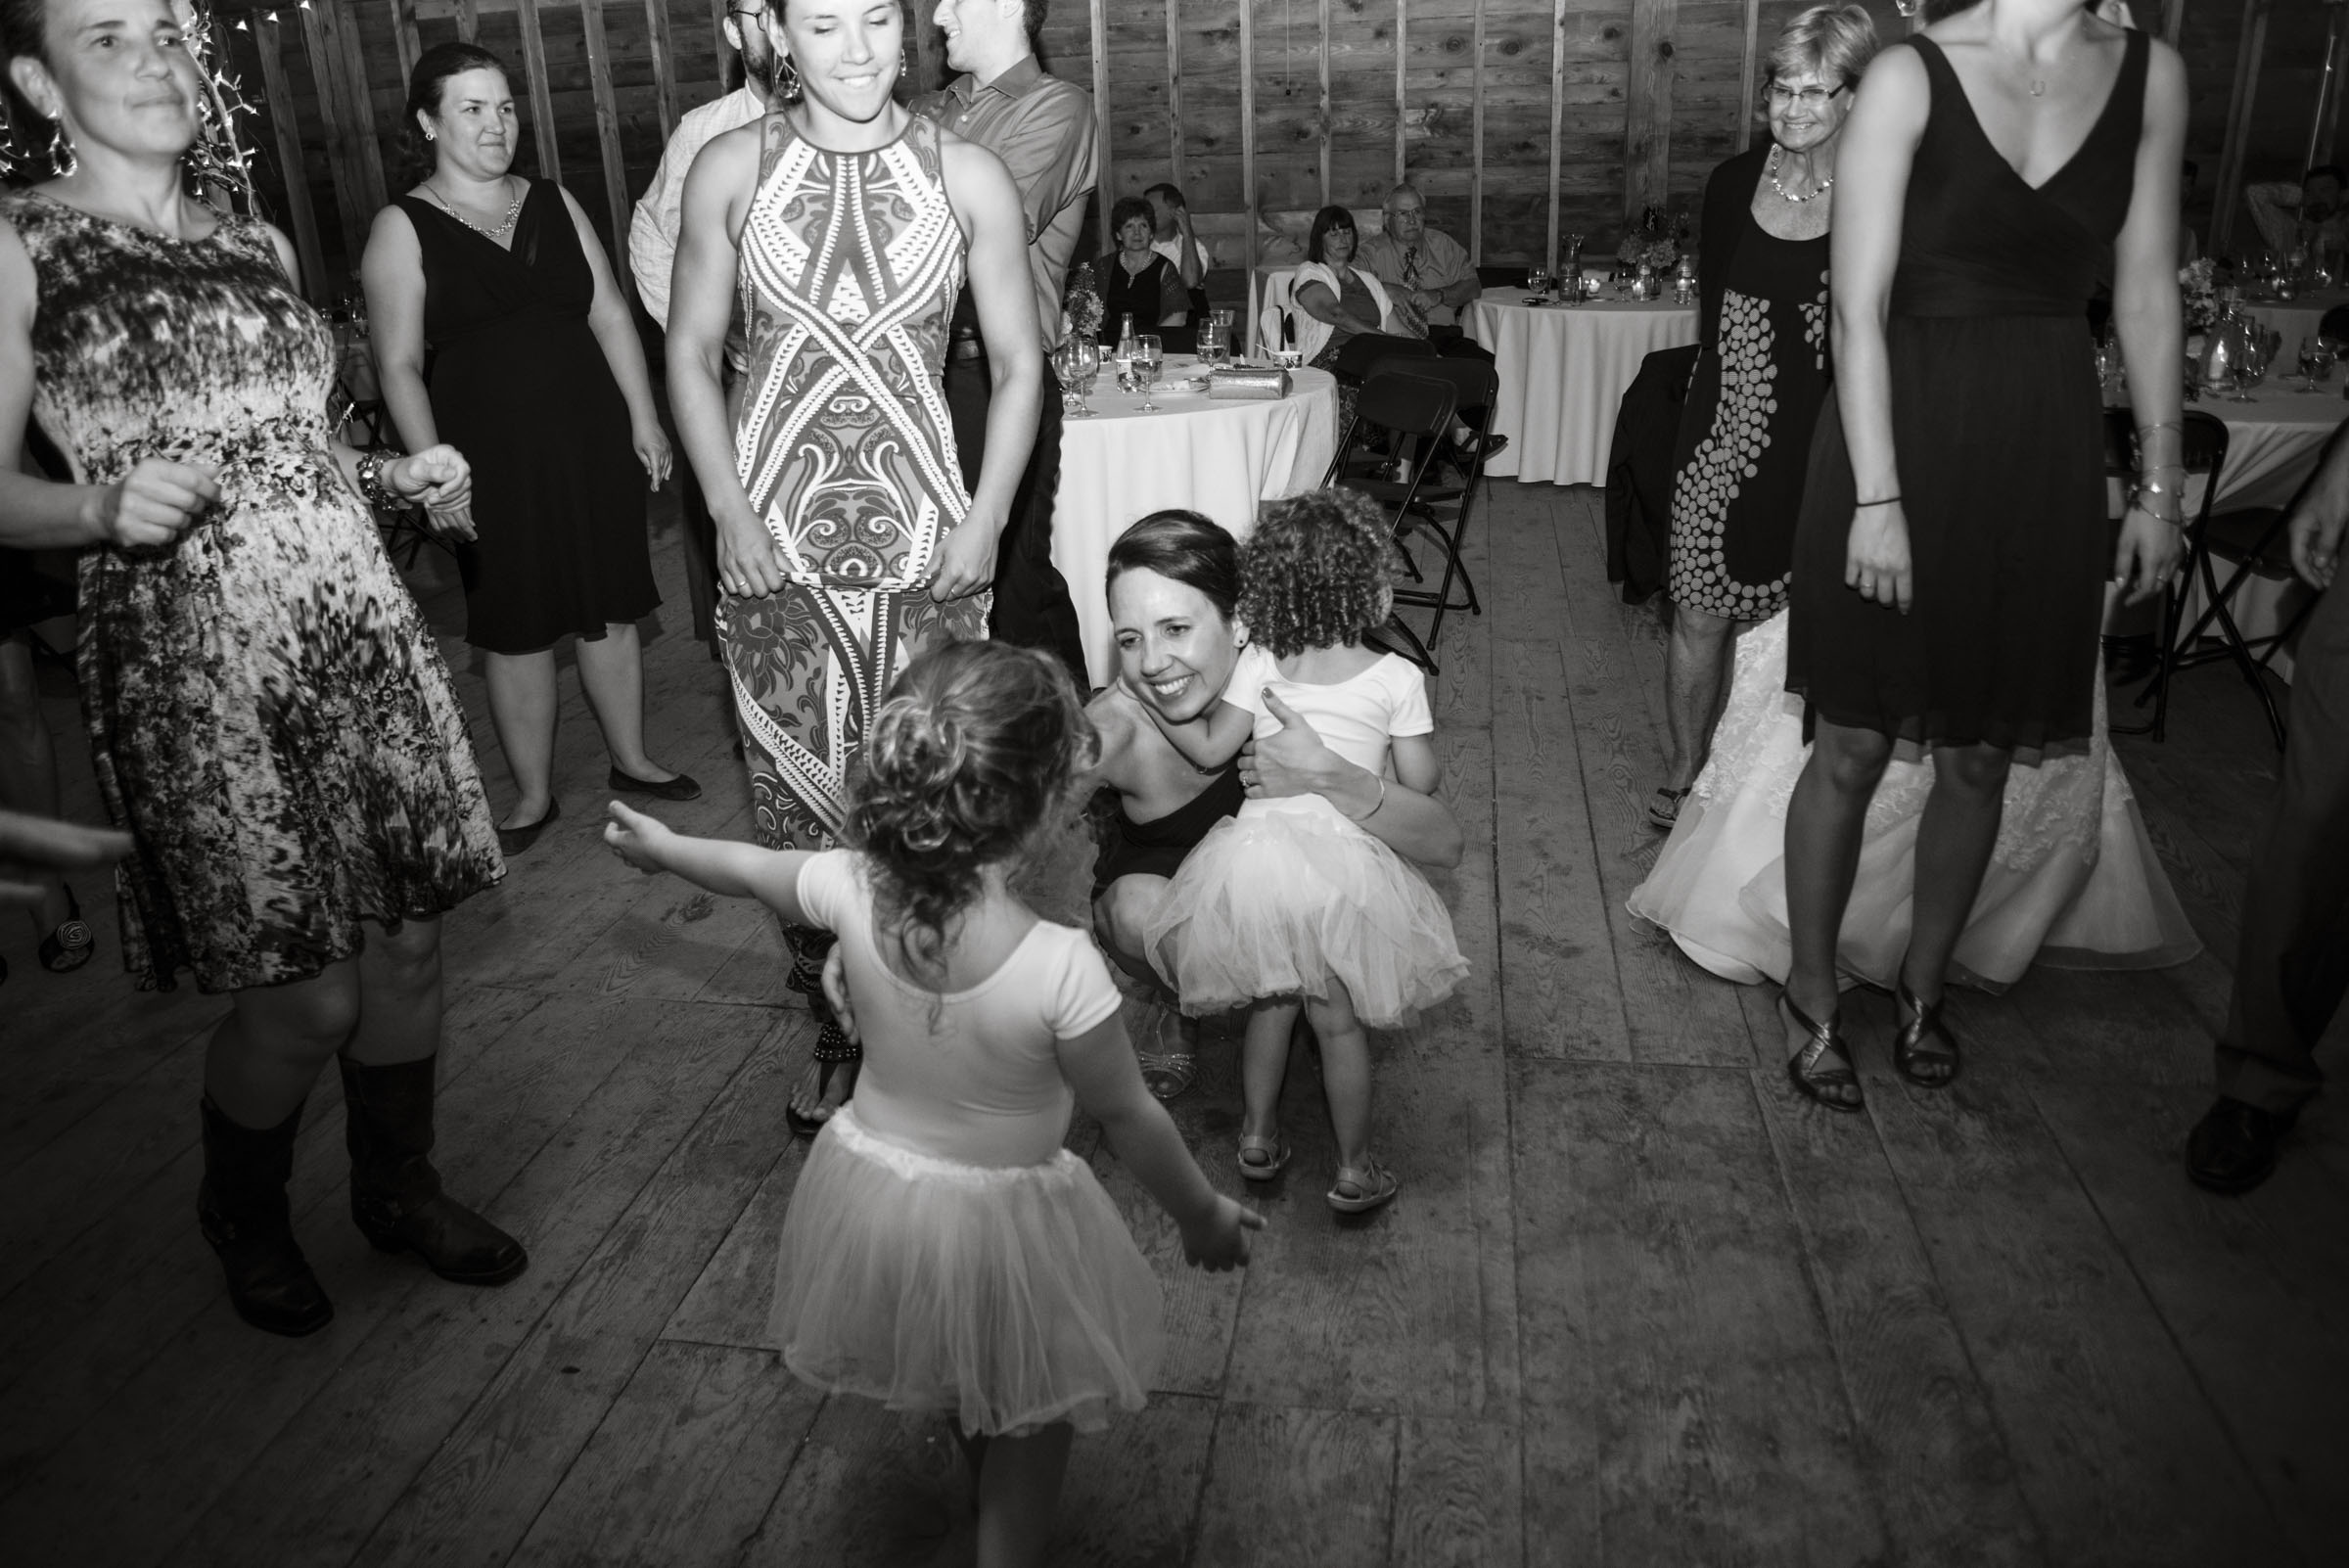 08232014-Chris&VanessaWedding-JuliaLuckettPhotography-590